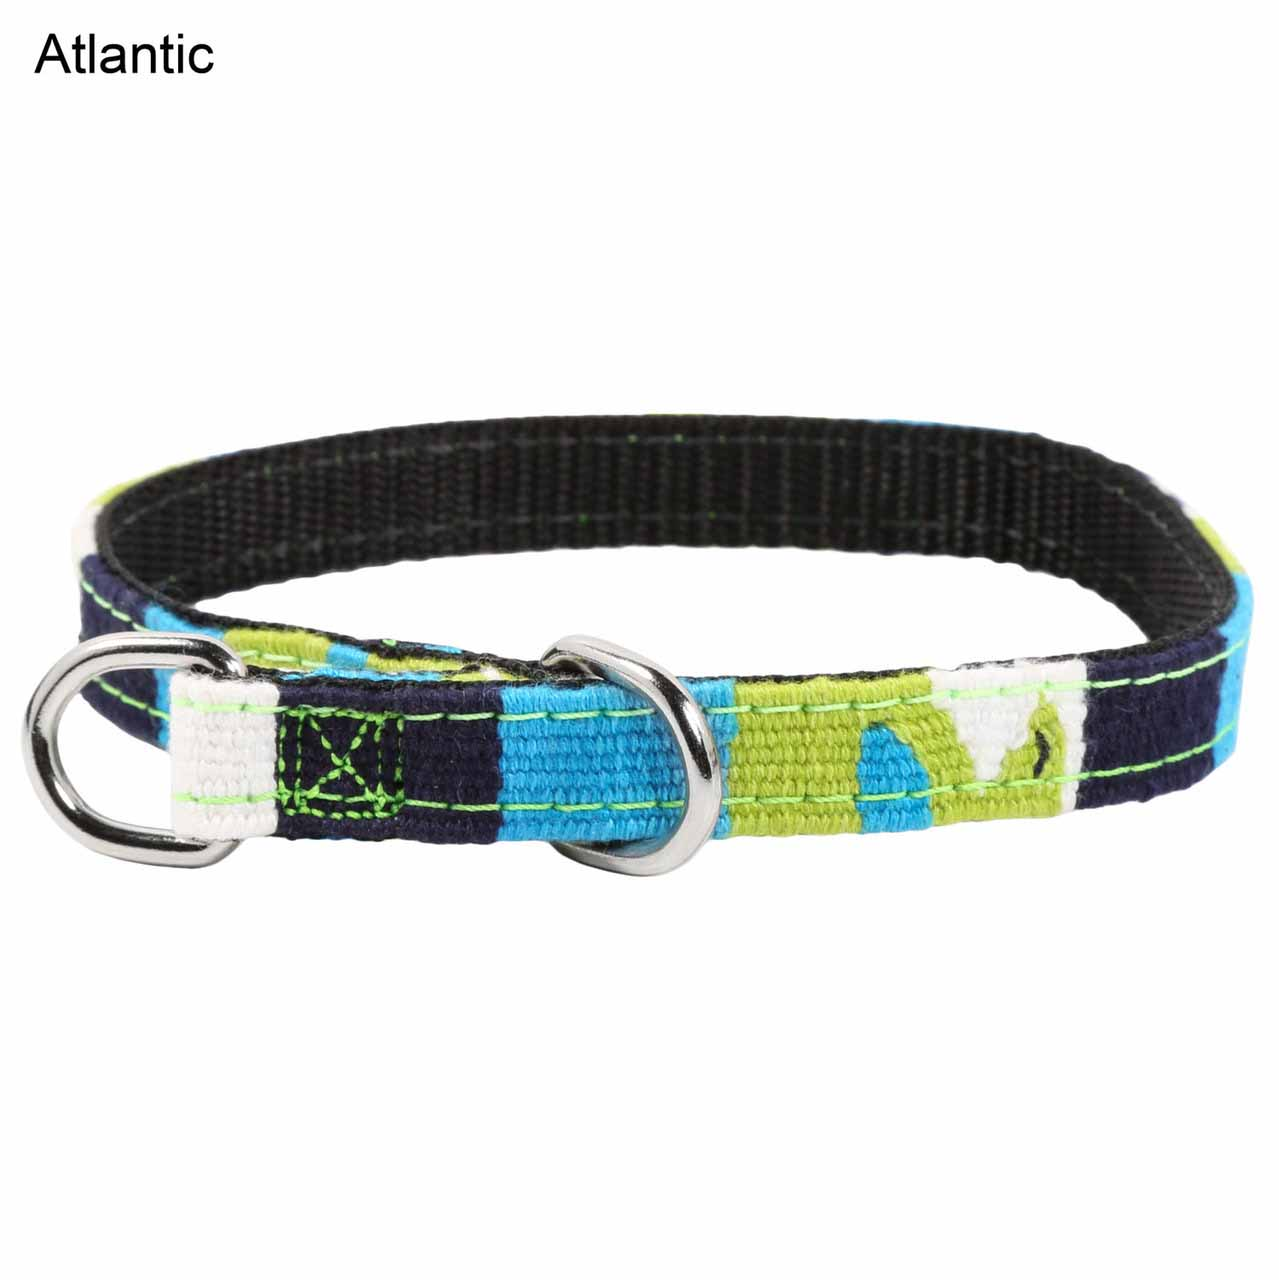 MAYA Small Slip Collar for Puppies & Small Dogs - Atlantic